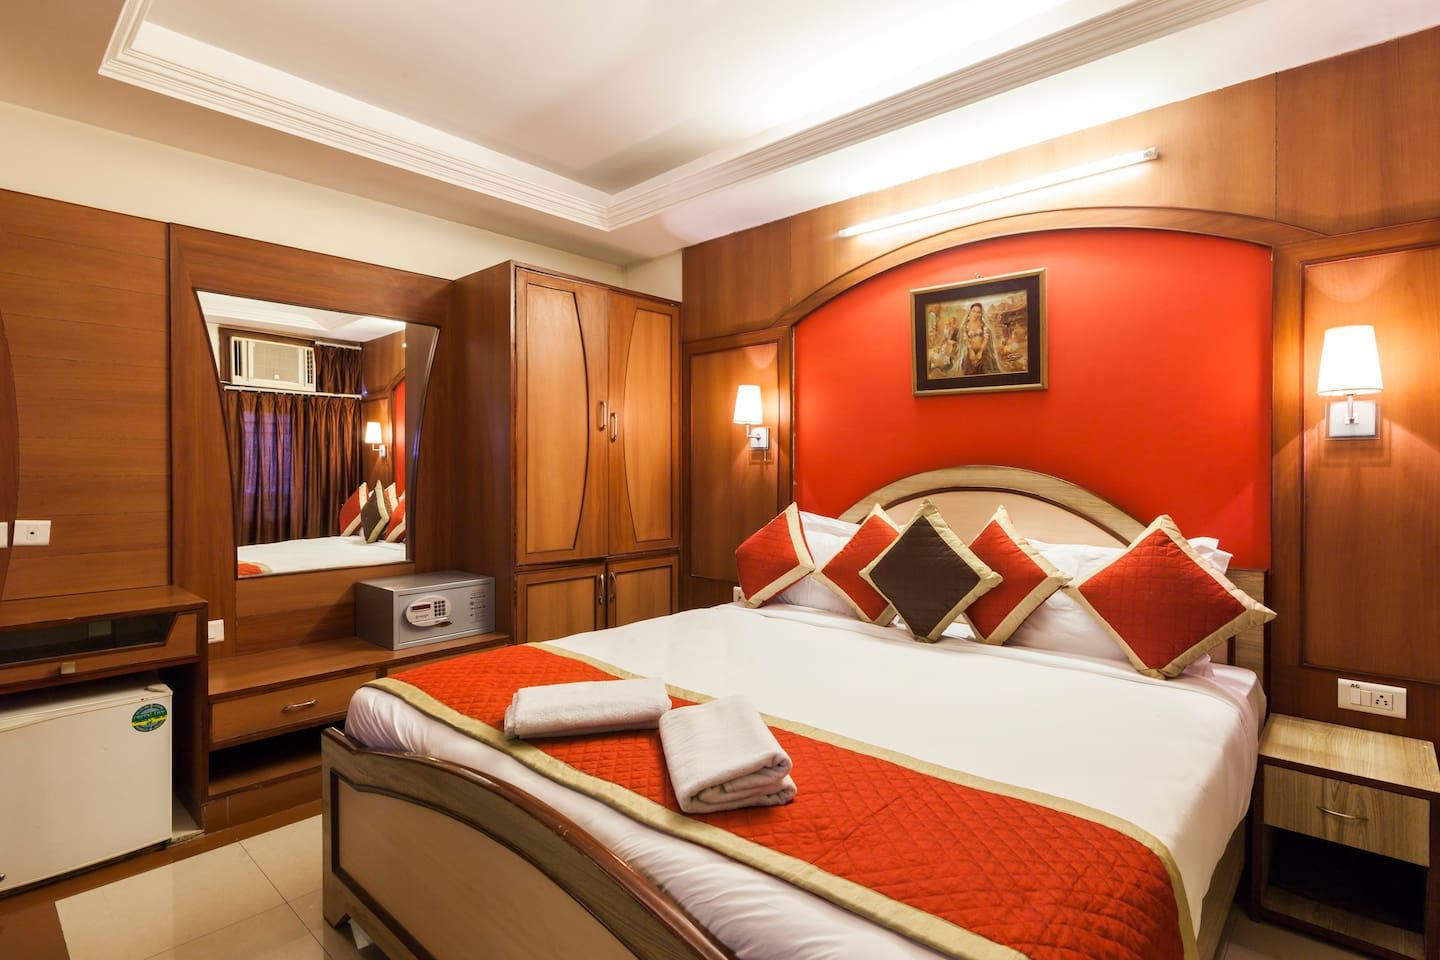 Suite Room With 3 Star Hotel In Jaipur India Bed Breakfasts